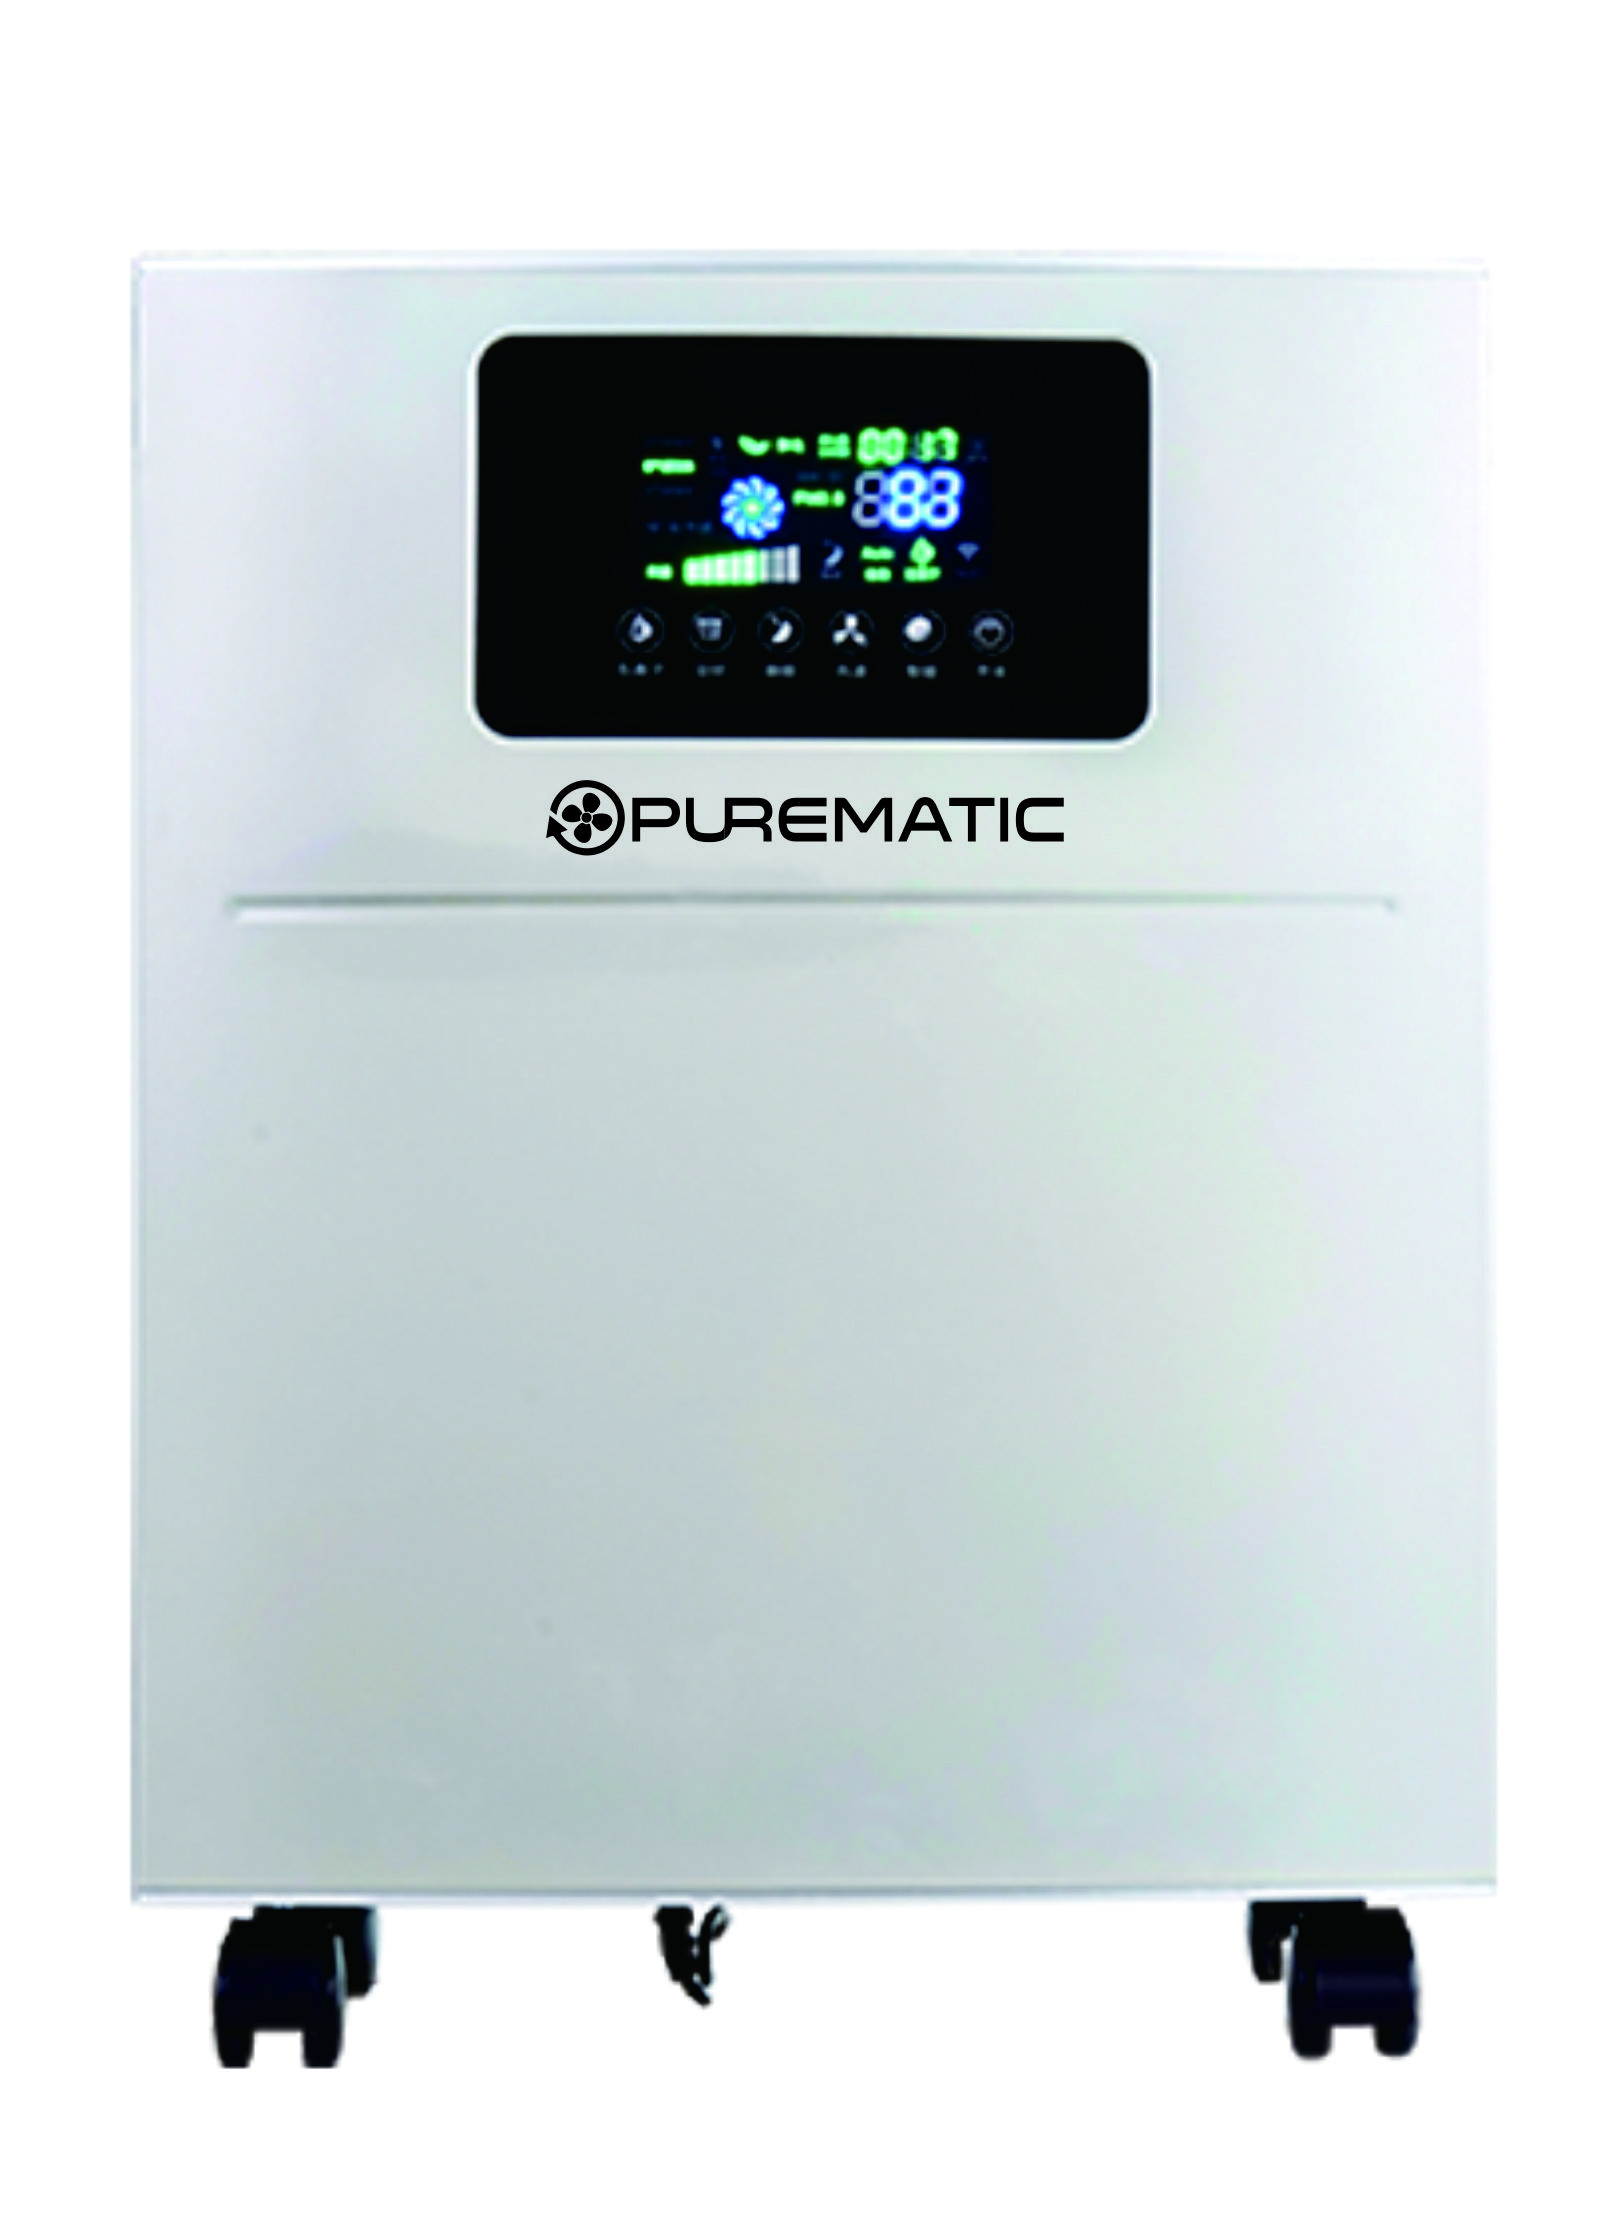 Purematic 70m Air Purifier